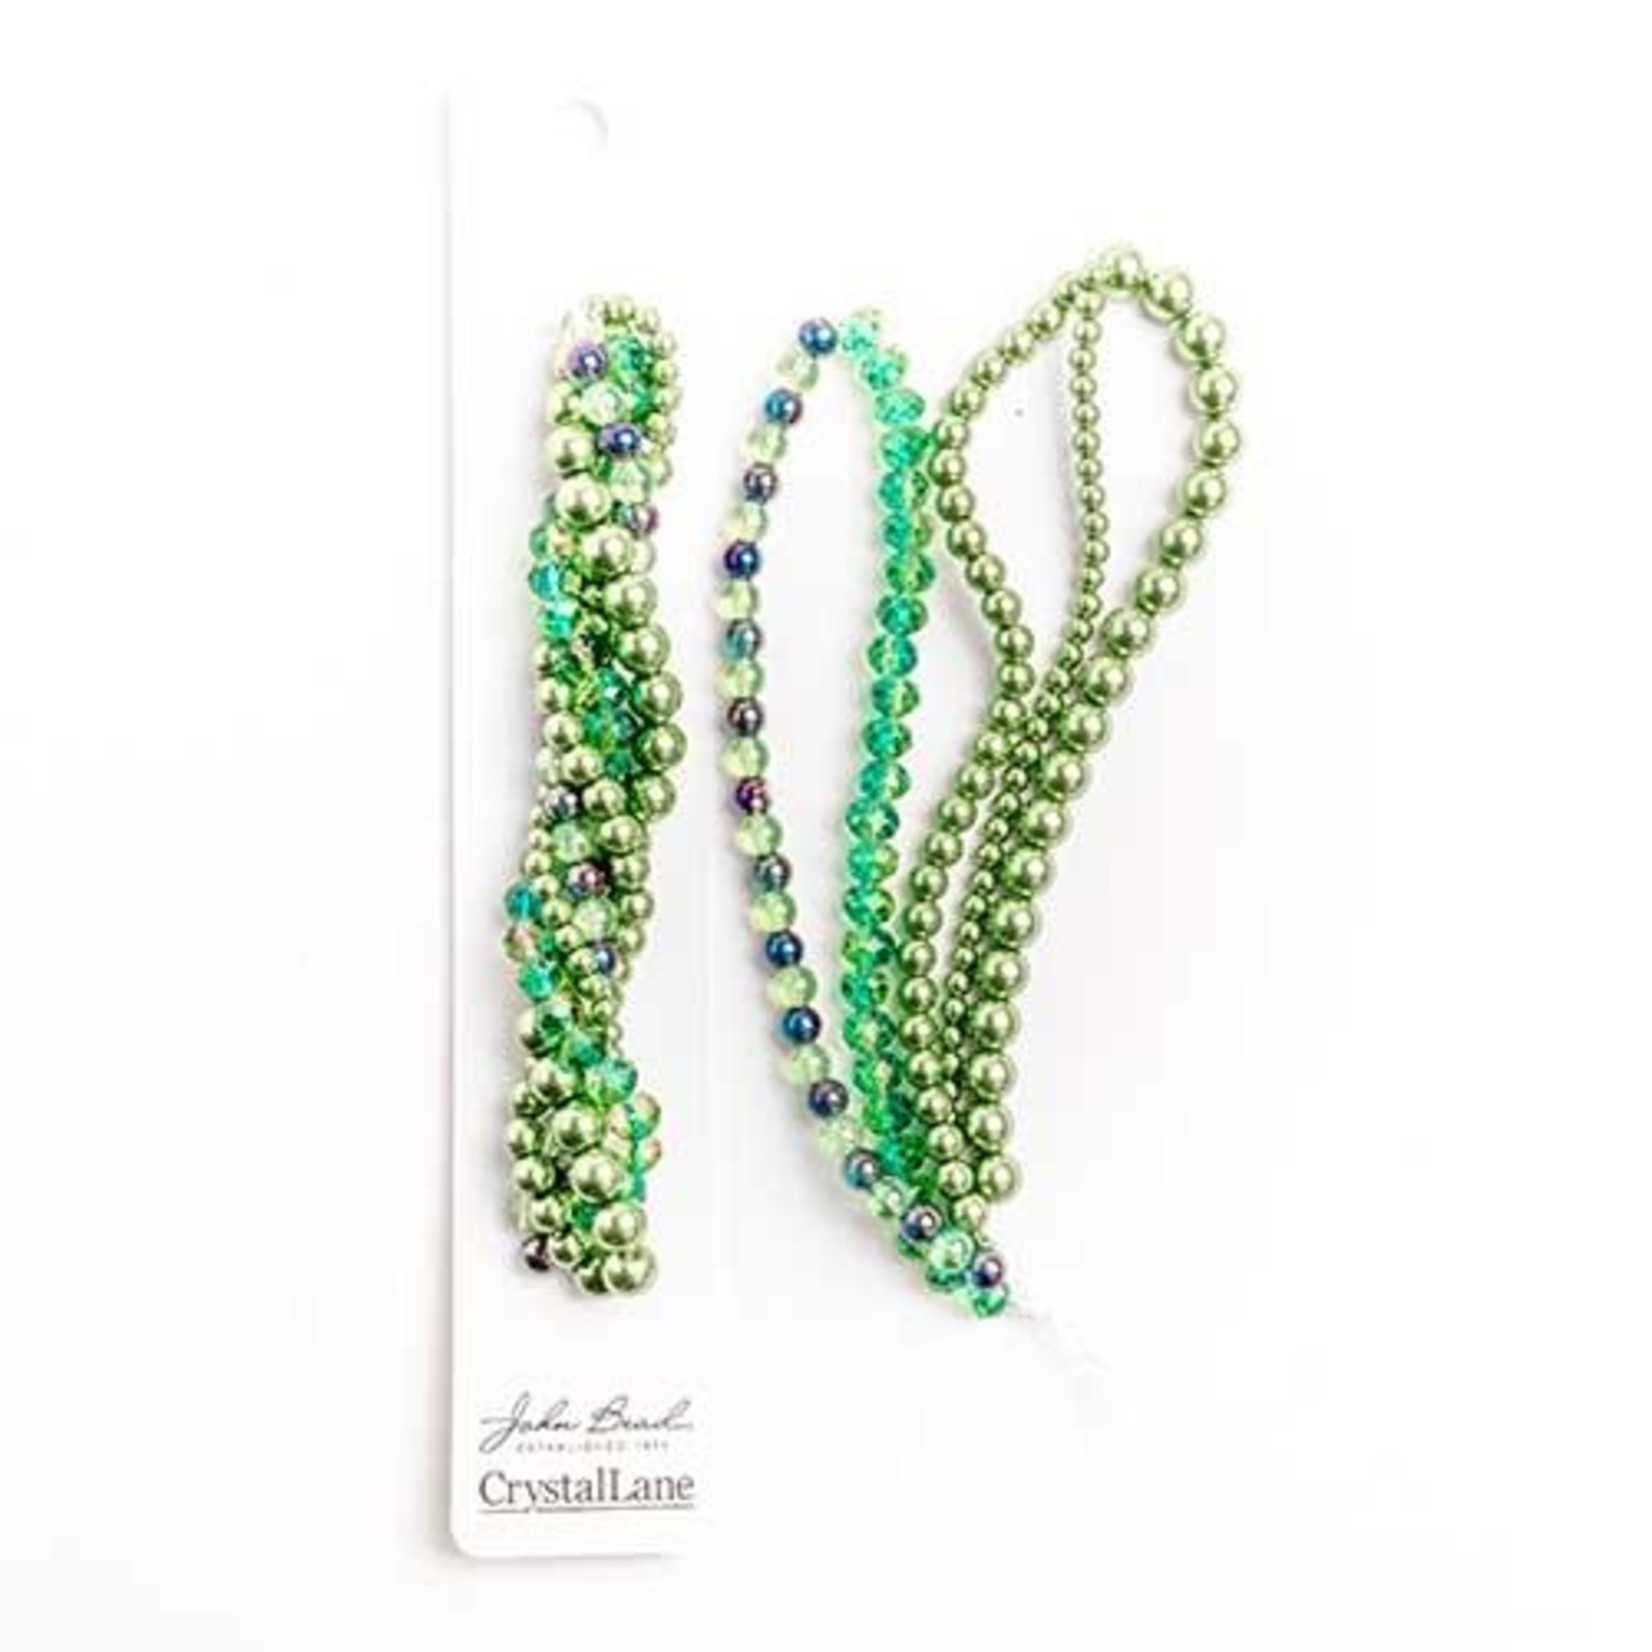 Crystal Lane Twisted Bead Strands Green Hydrangea